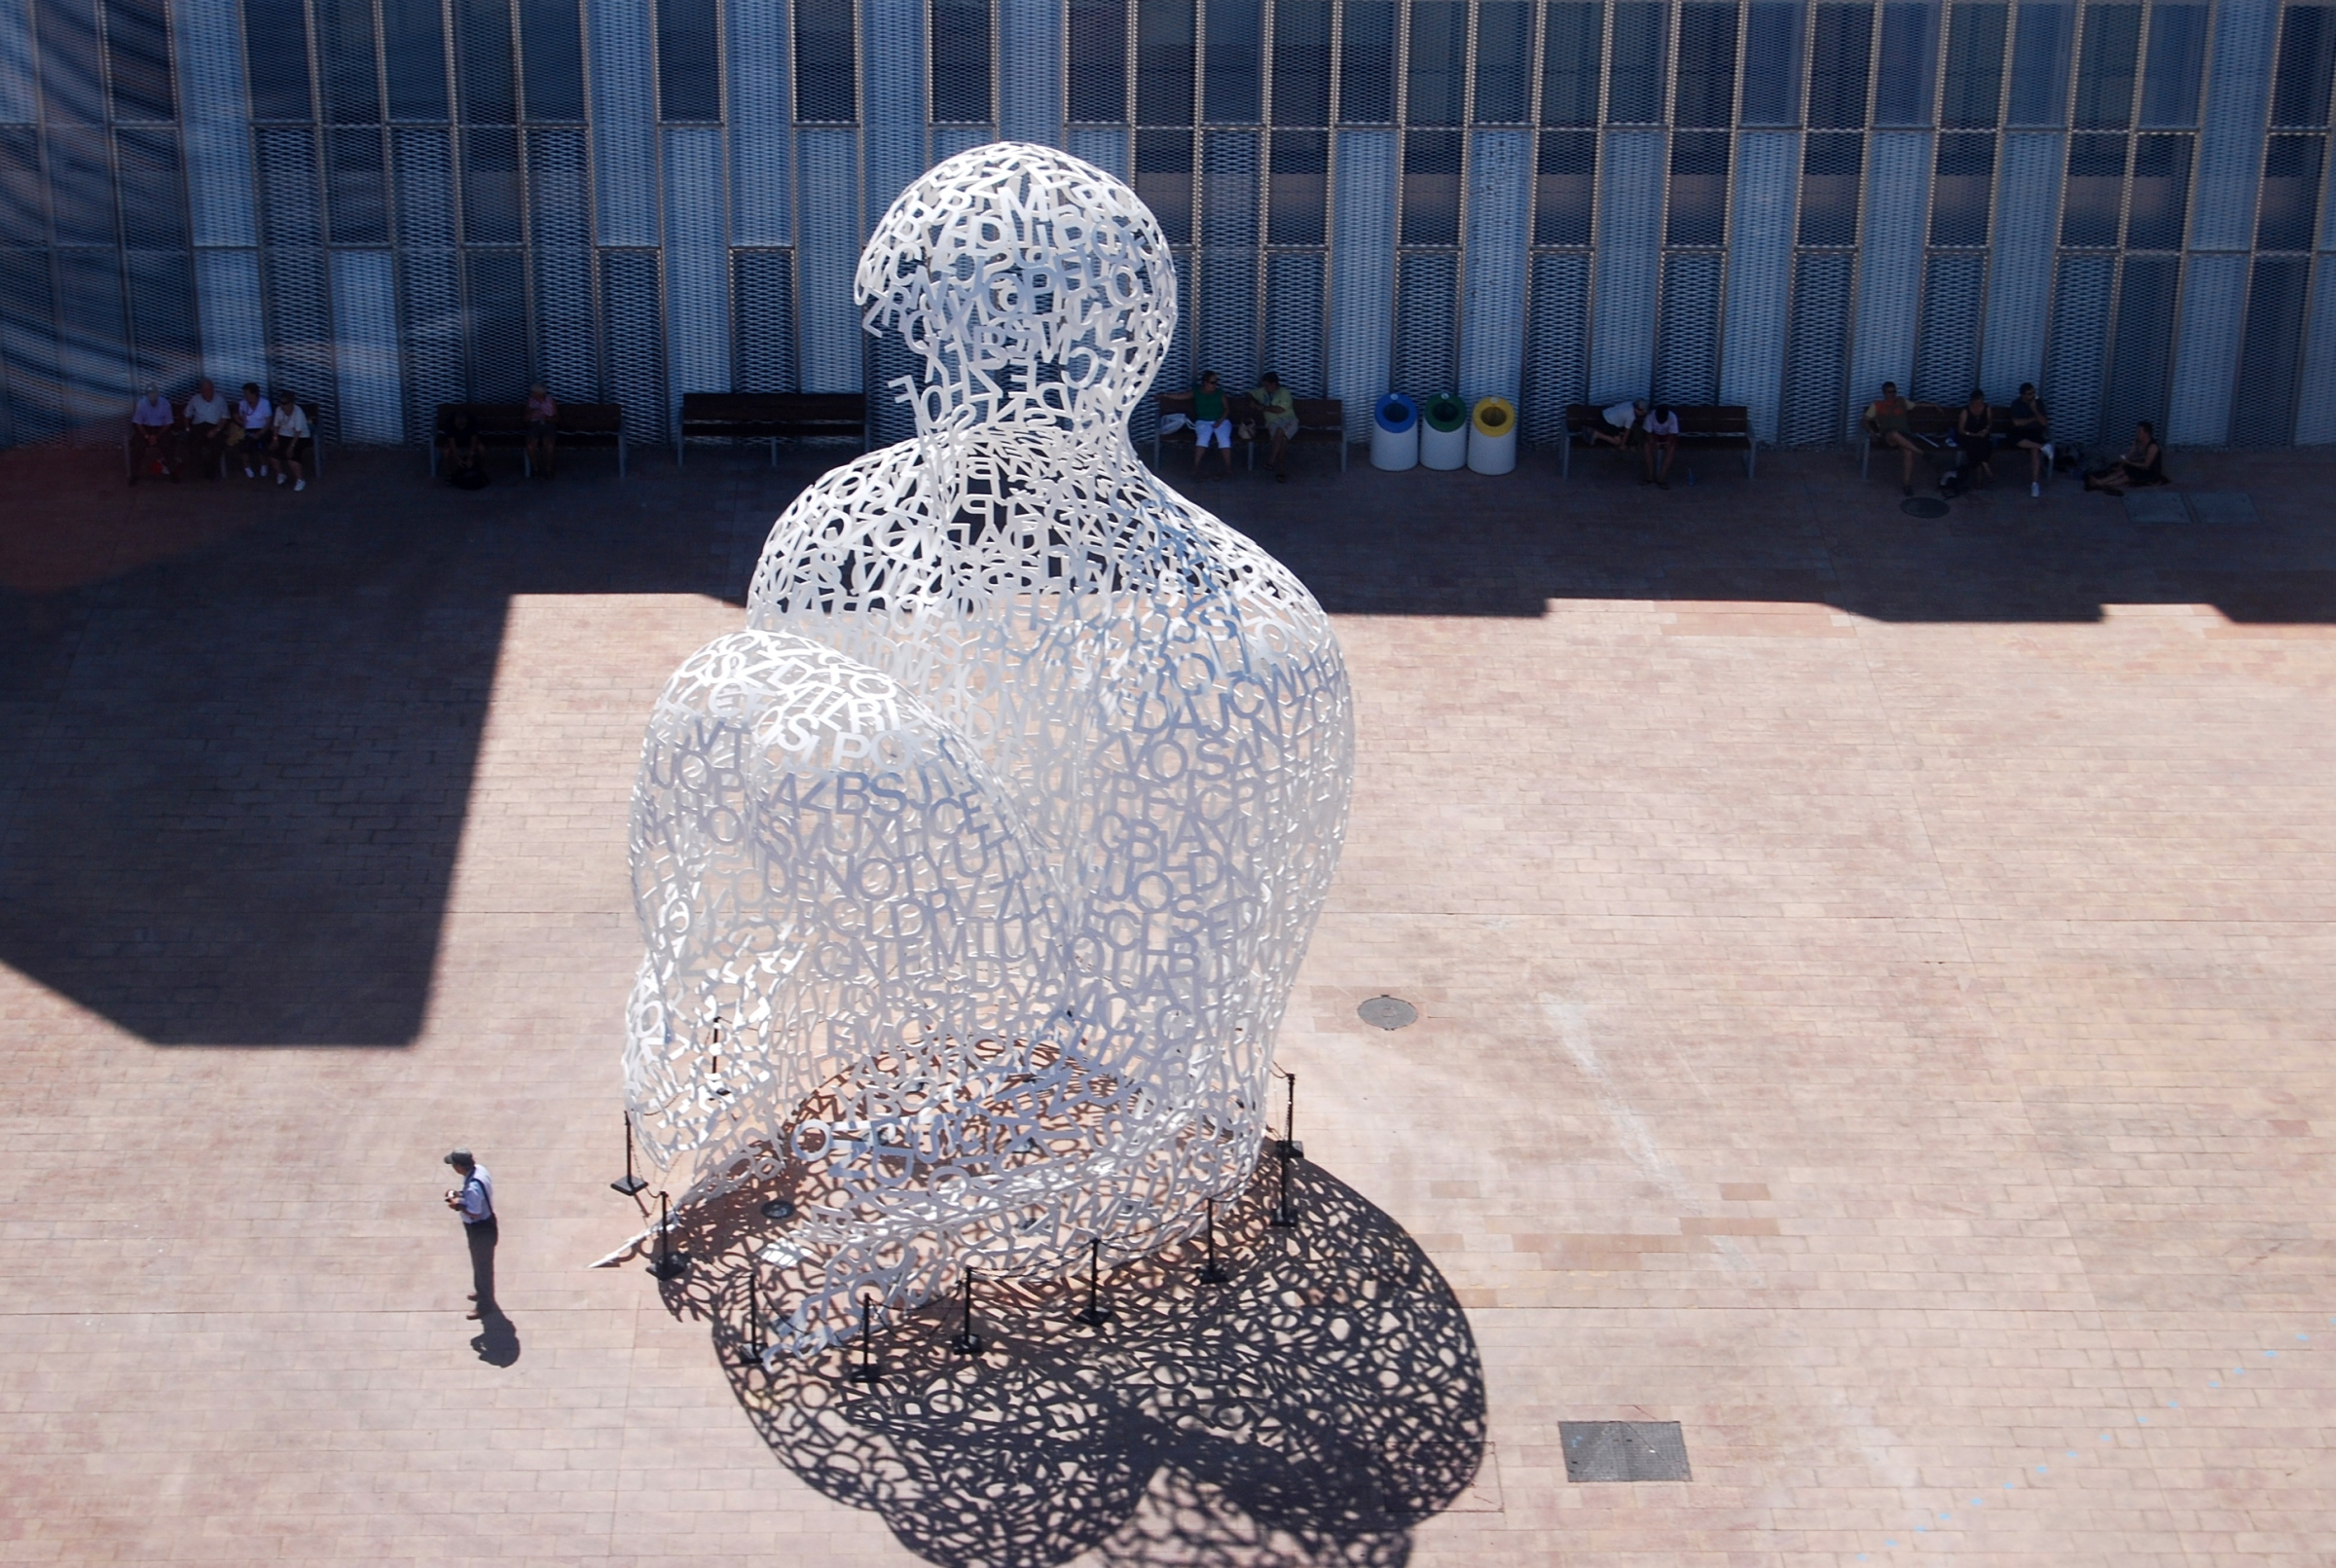 Oeuvre d'art de Jaume Plensa, photographiée par Carthesian